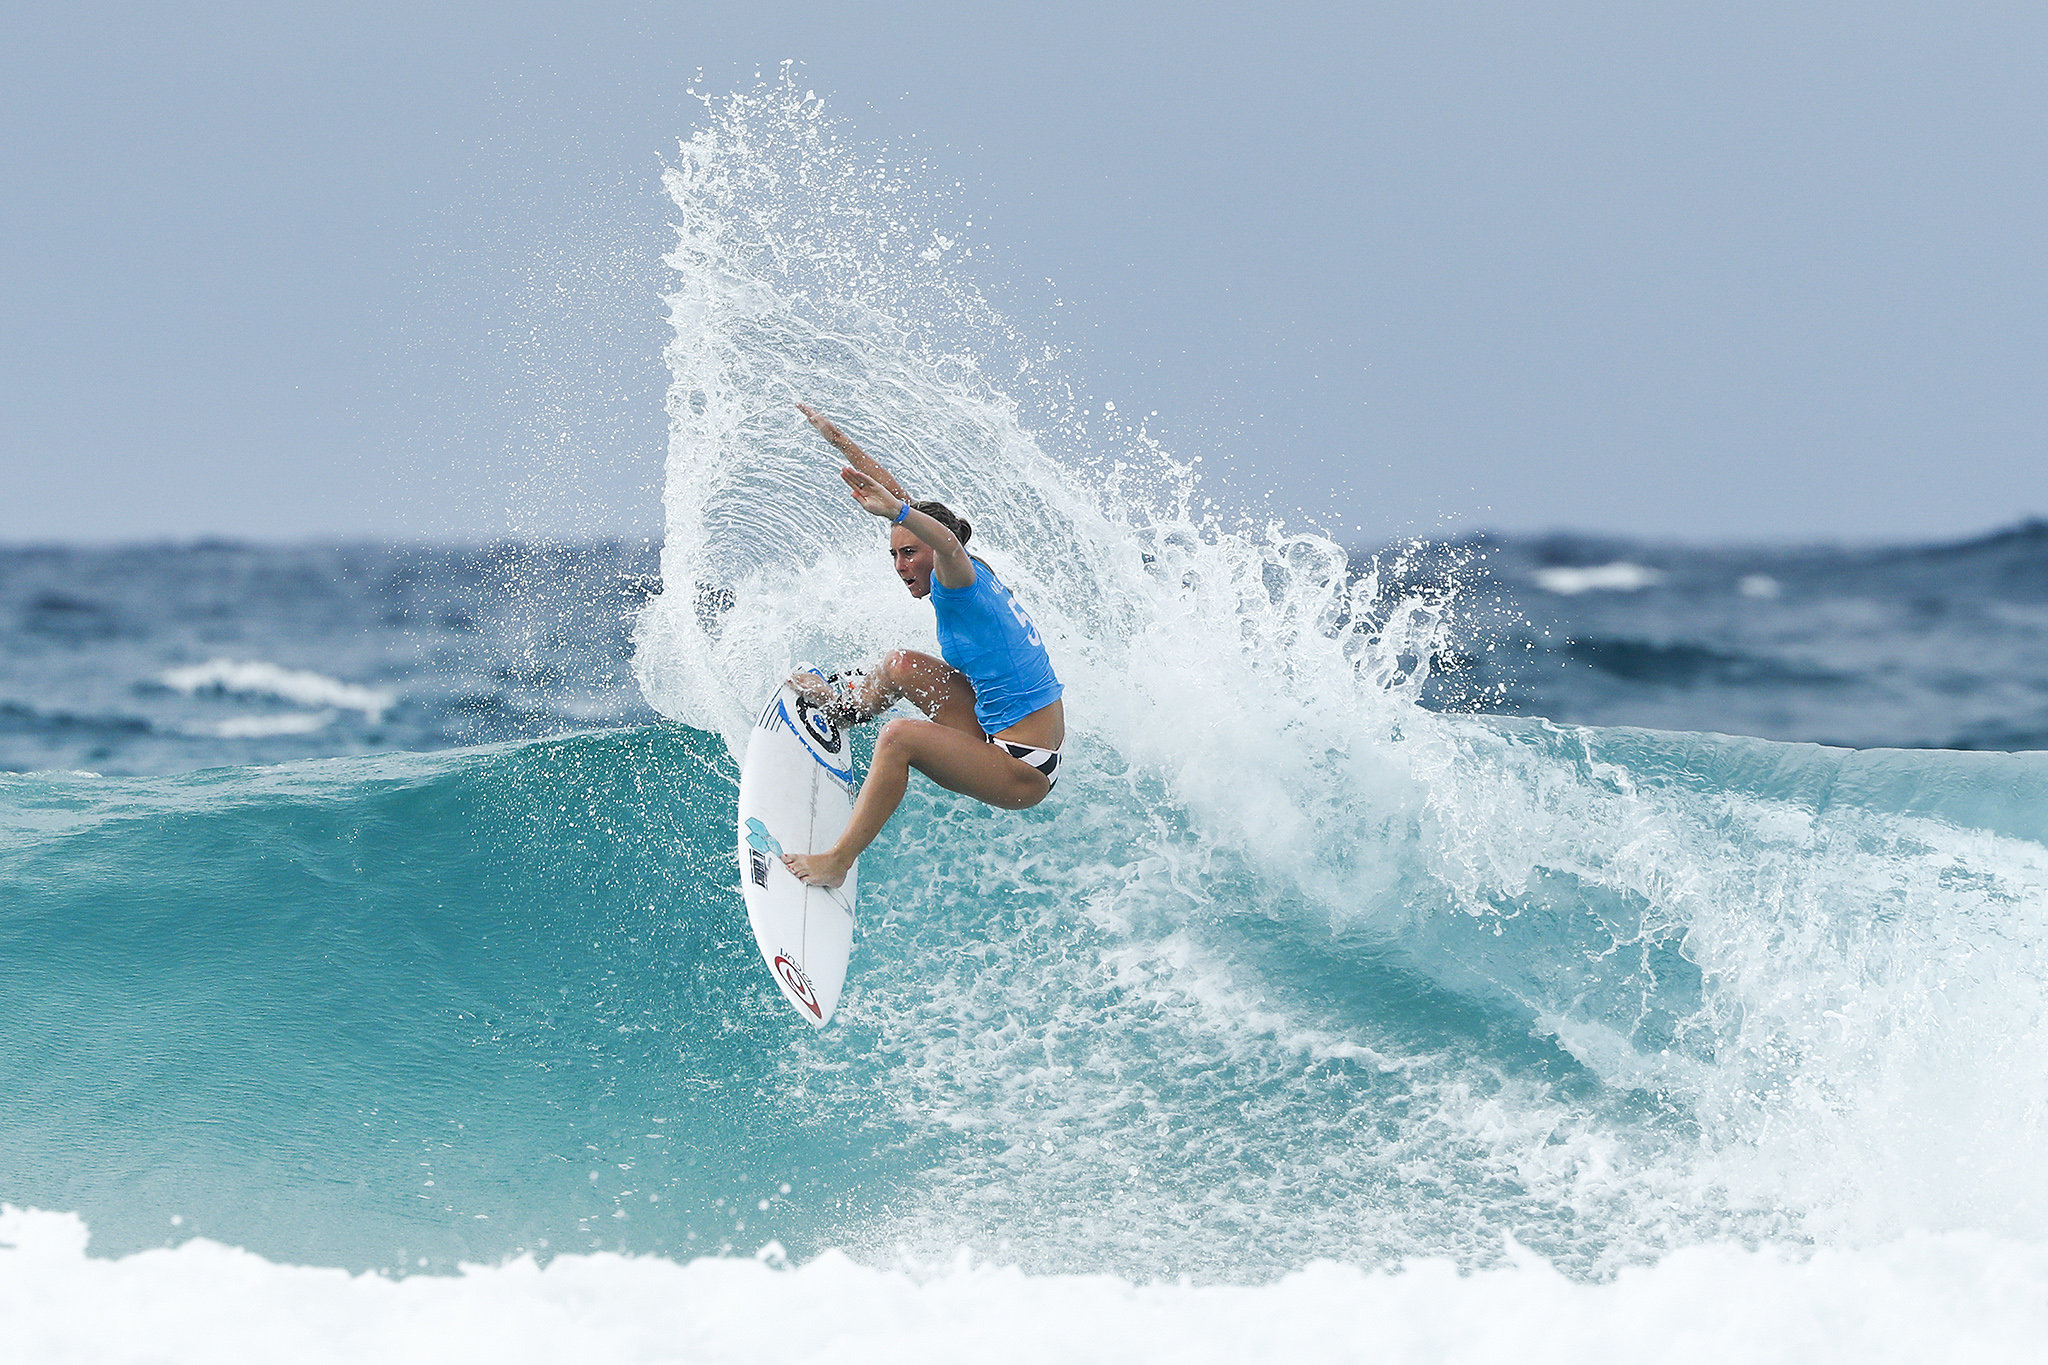 Nikki Van Dijk of Australia winning Heat 3 of Round One at the Roxy Pro Gold Coast, Australia.